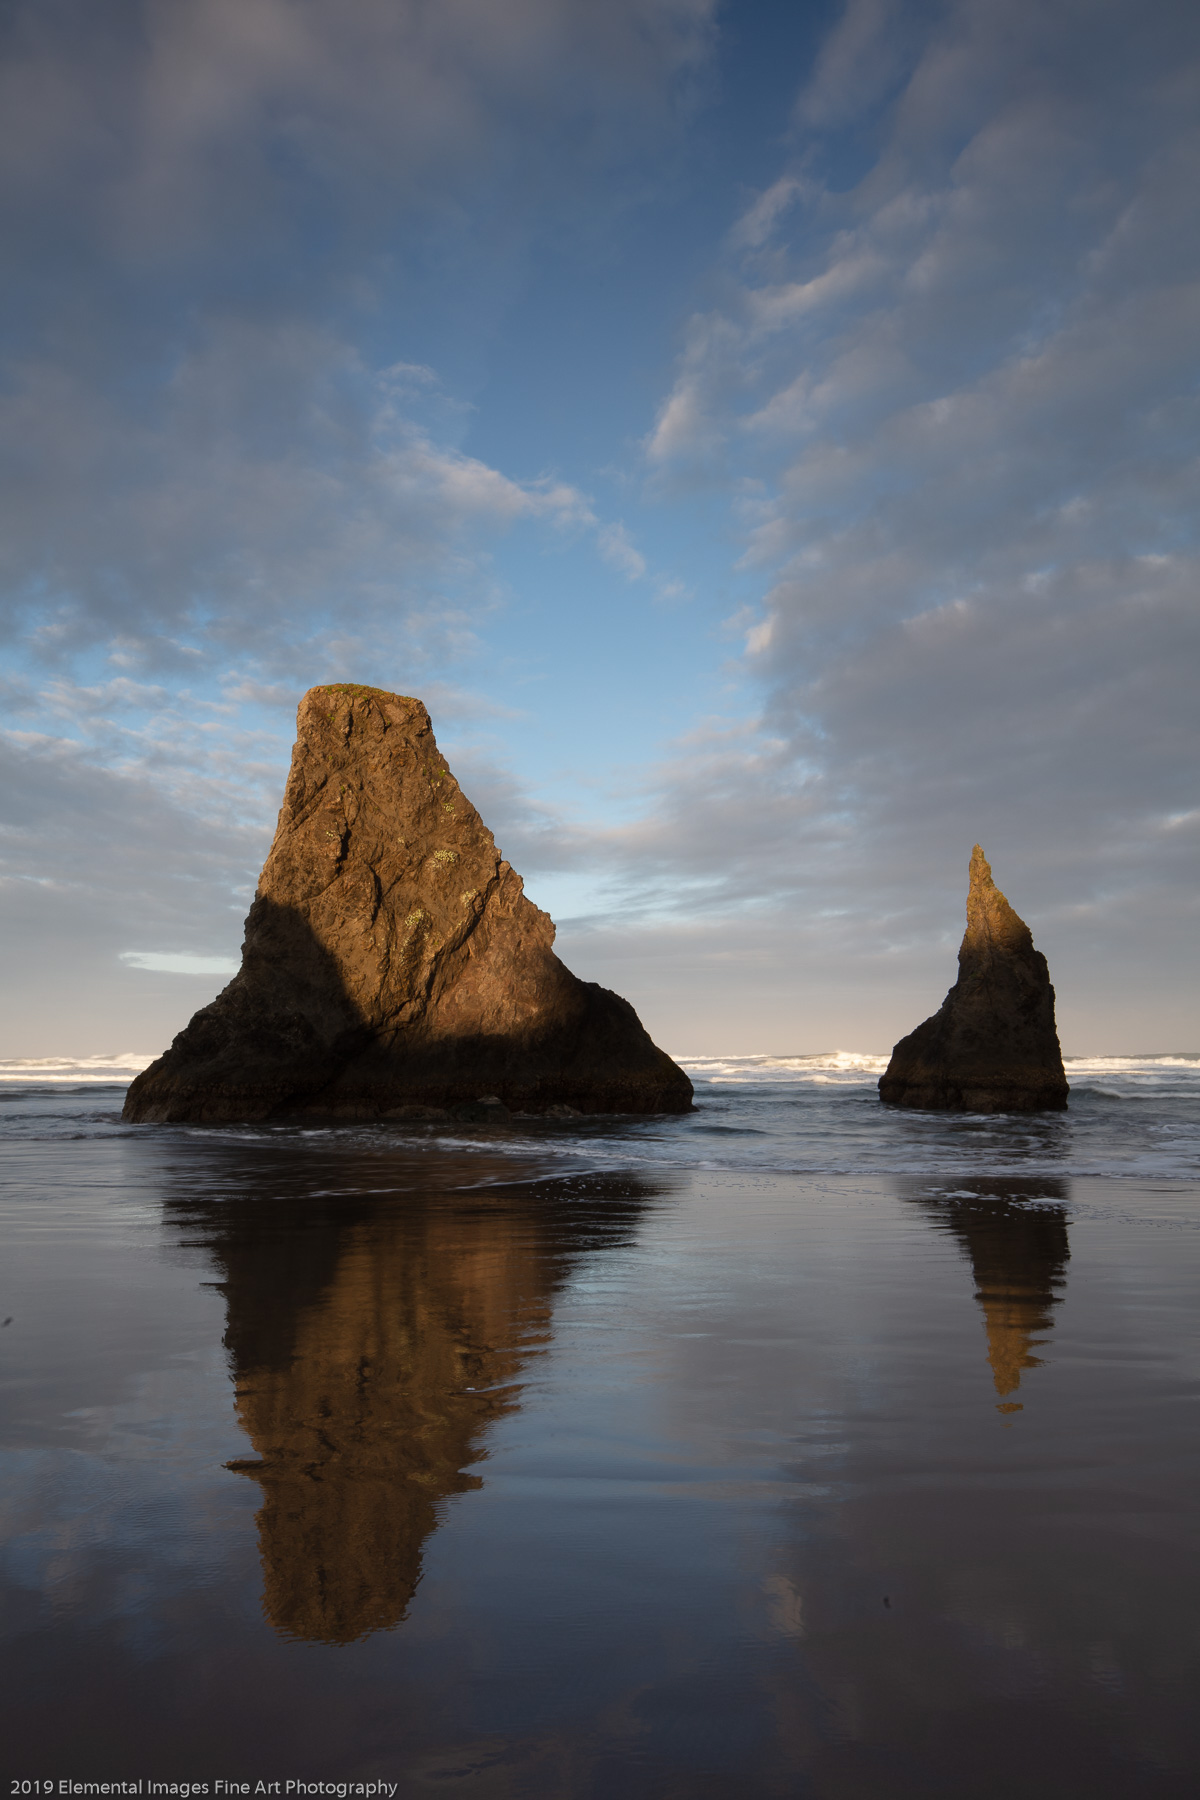 Stack at Dawn | Bandon | OR | USA - © 2019 Elemental Images Fine Art Photography - All Rights Reserved Worldwide